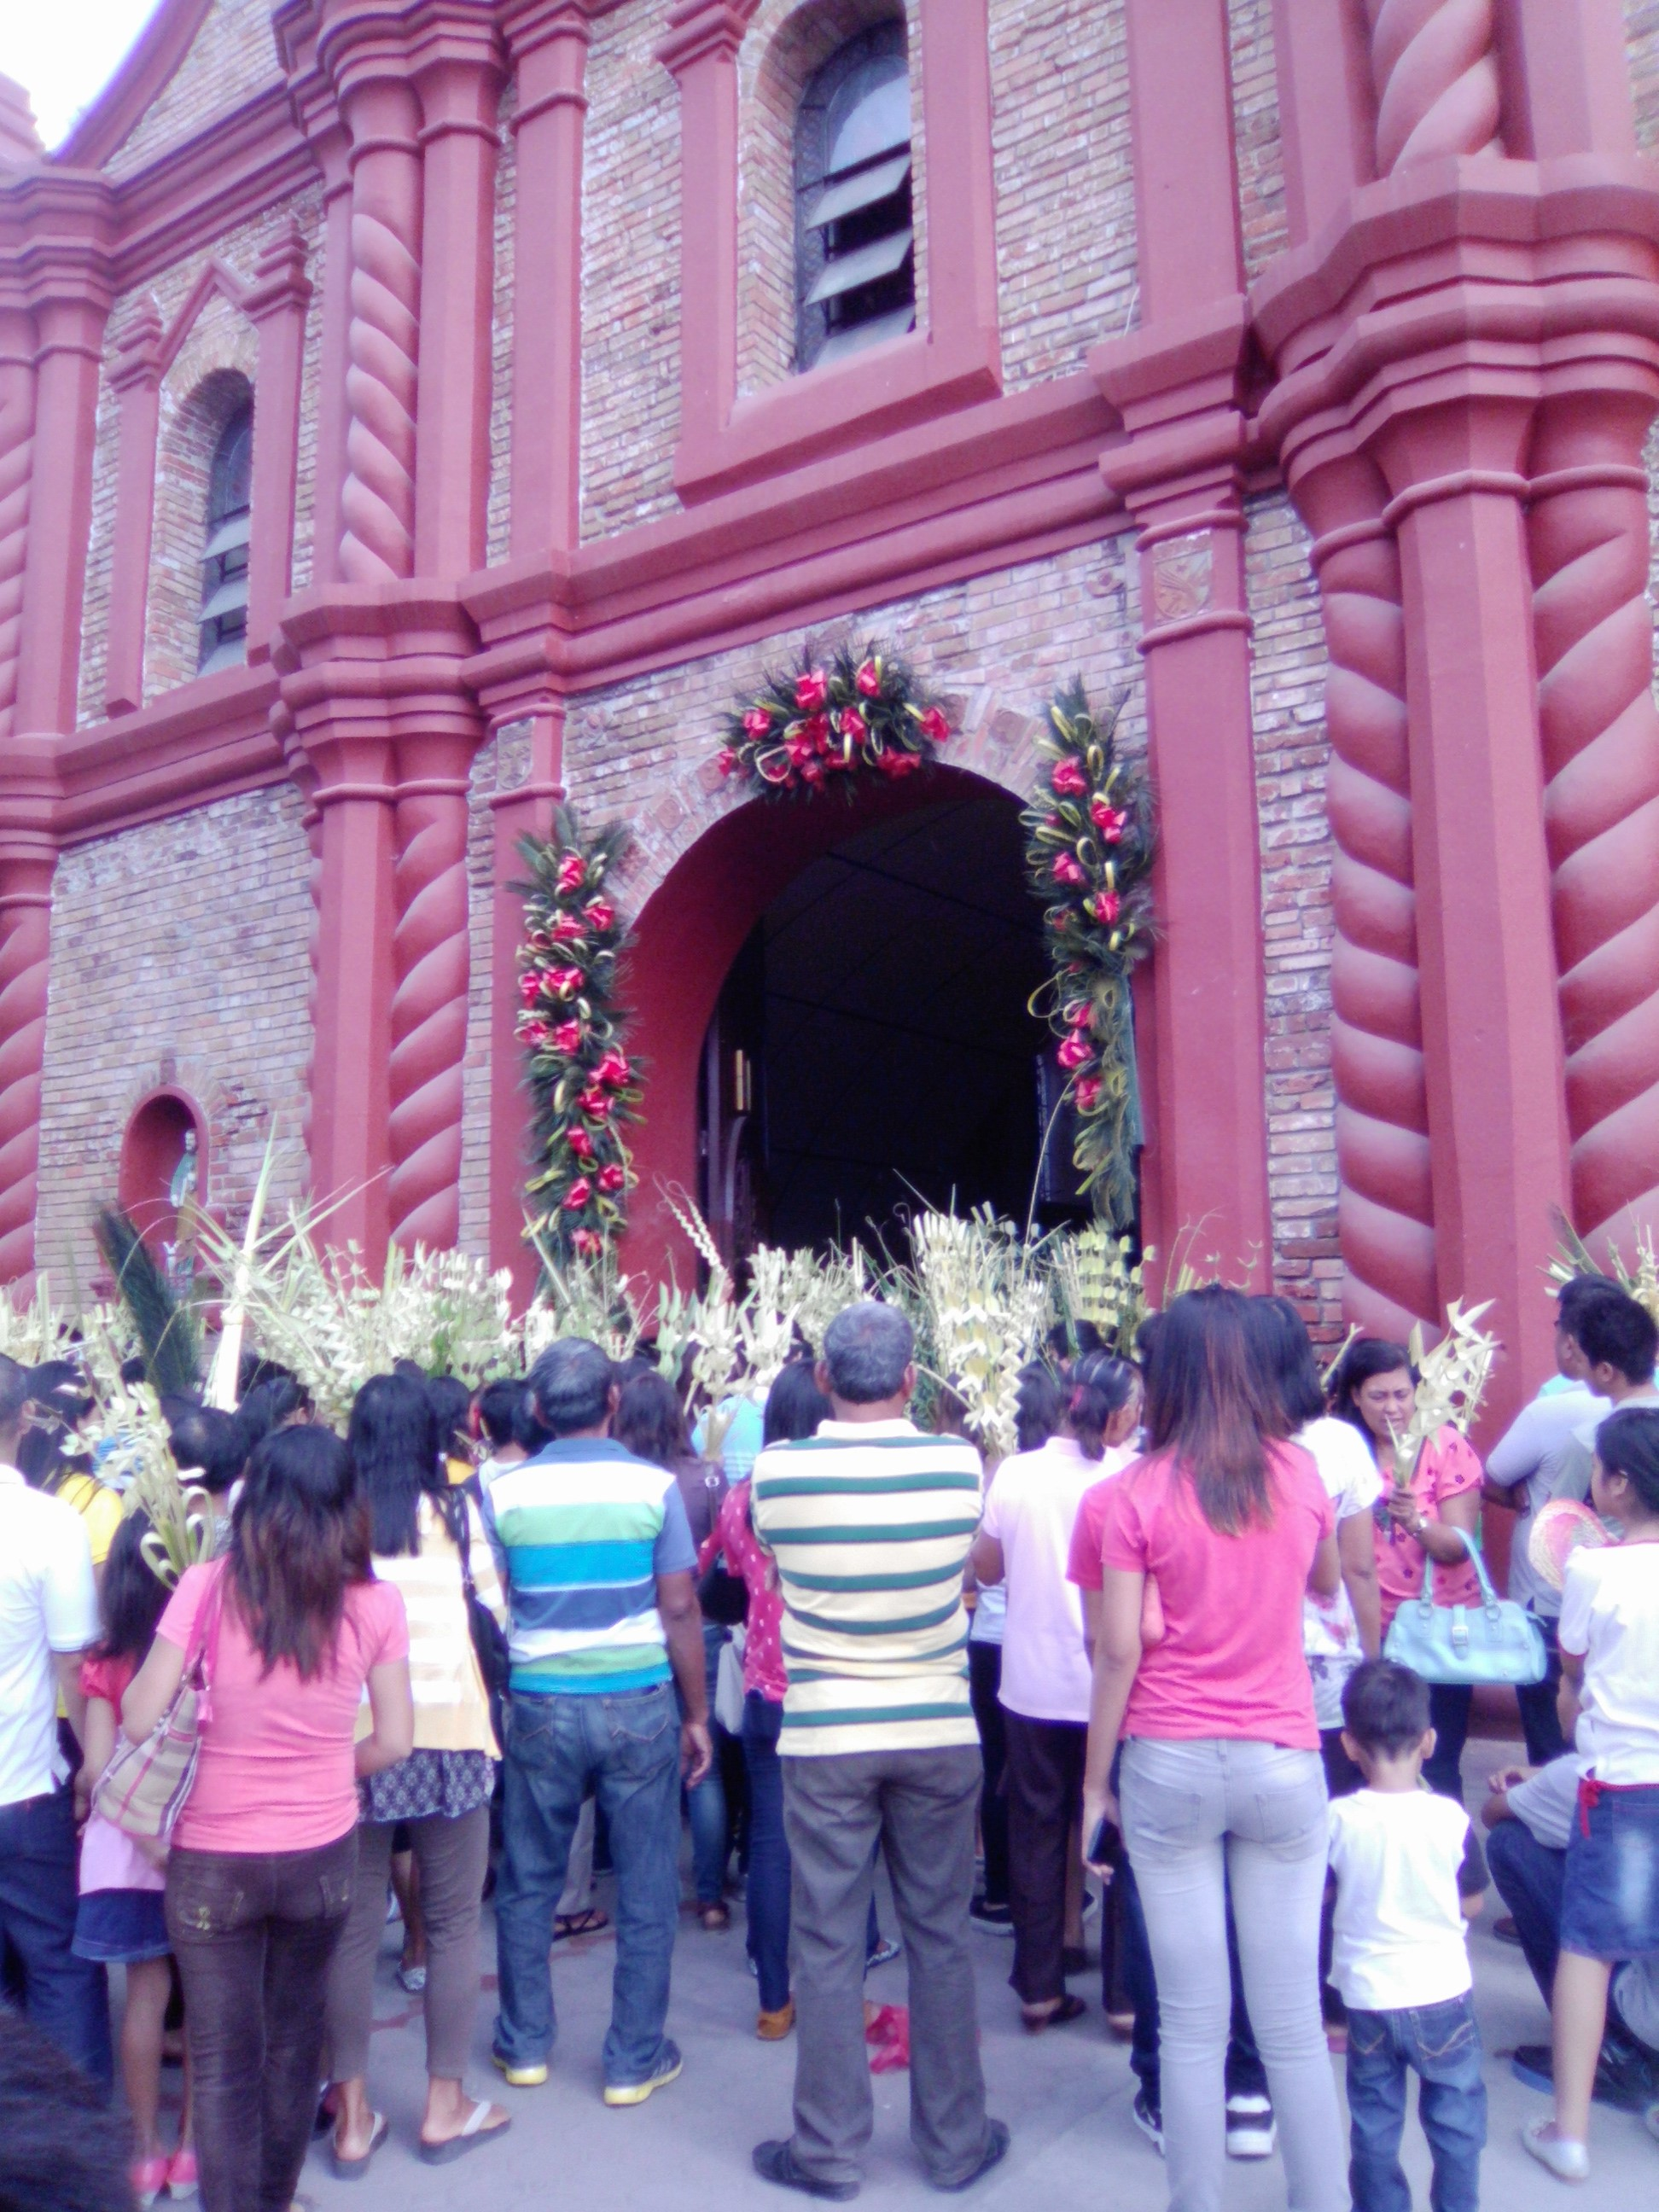 the entrance of our Cathedral